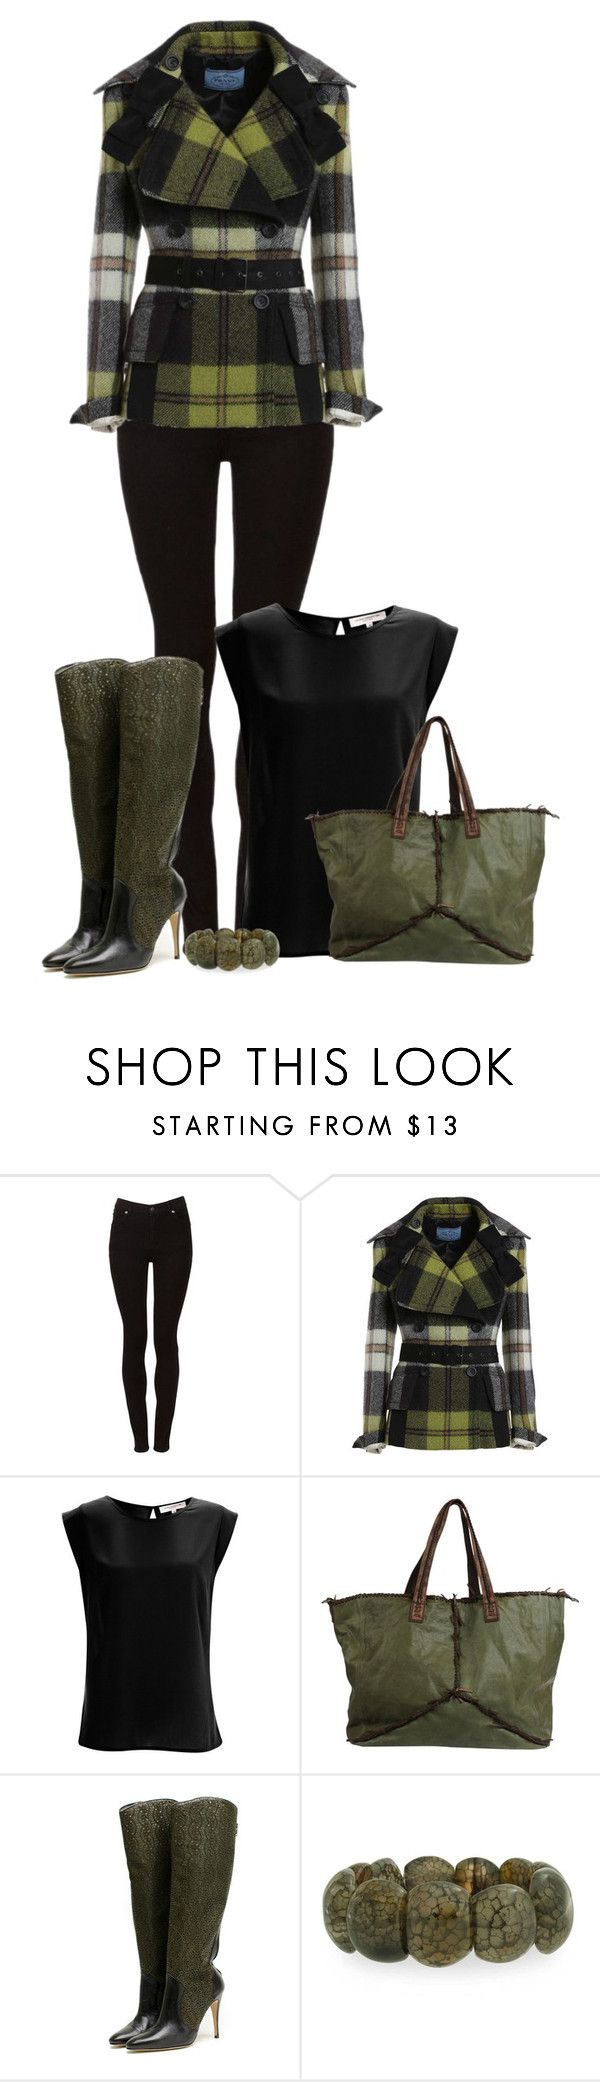 """""""11-7-16"""" by nellegrau ❤ liked on Polyvore featuring Cheap Monday, French Connection, VINTAGE DE LUXE, Manolo Blahnik and Bling Jewelry"""